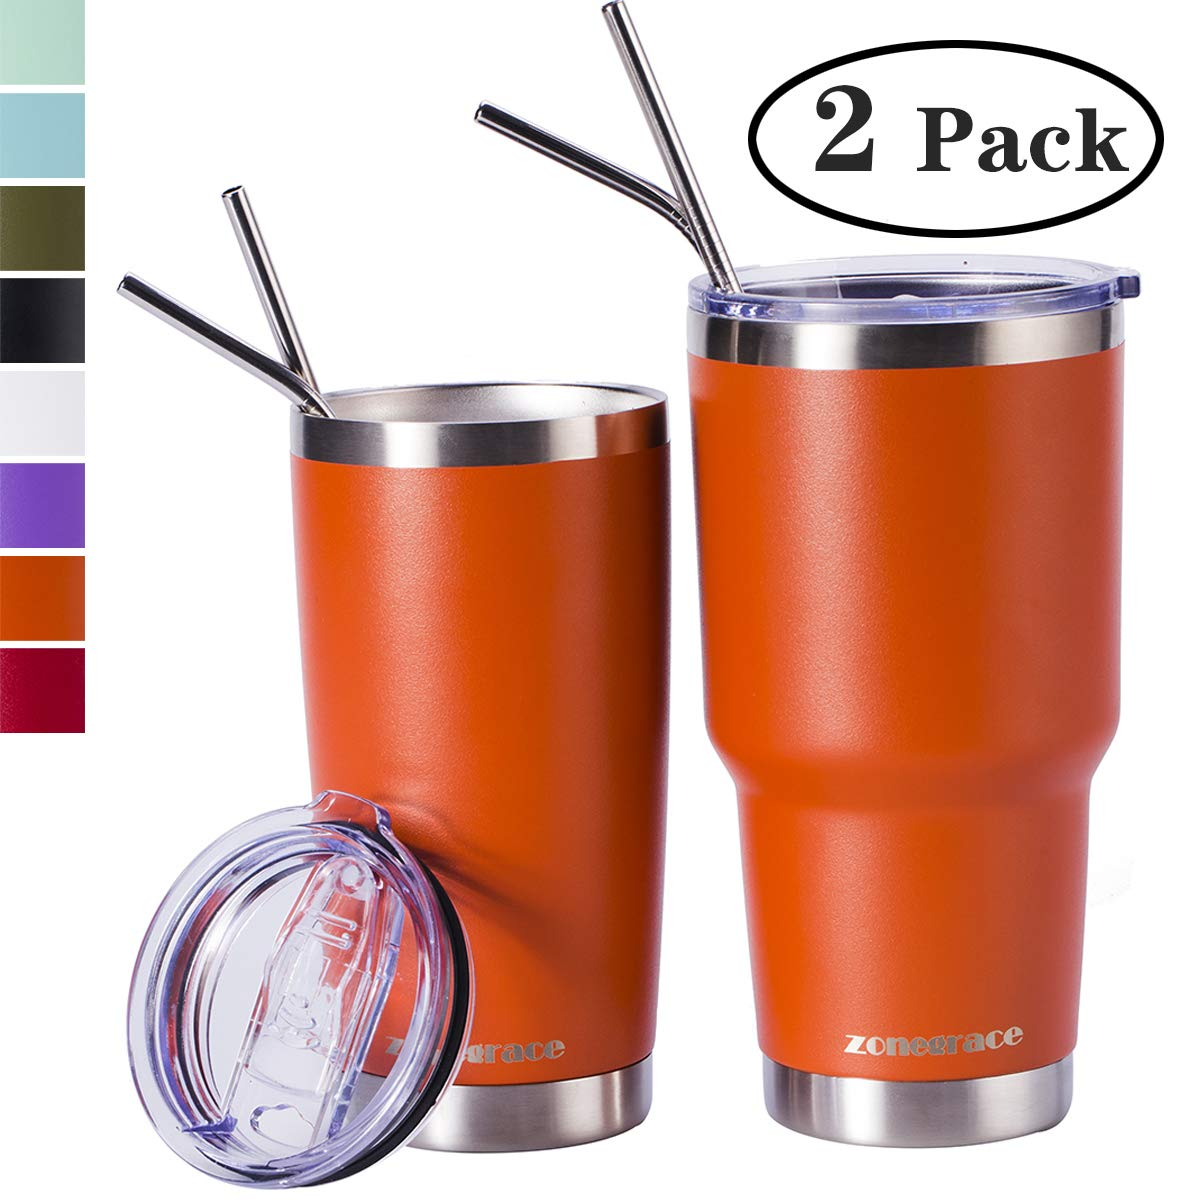 Zonegrace Orange 20oz and 30oz Insulated Tumblers with Lid & Gift Box | Stainless Steel Coffee Cup | Double Wall Vacuum Insulated Travel Coffee Mug with Splash Proof slid lid by Zonegrace